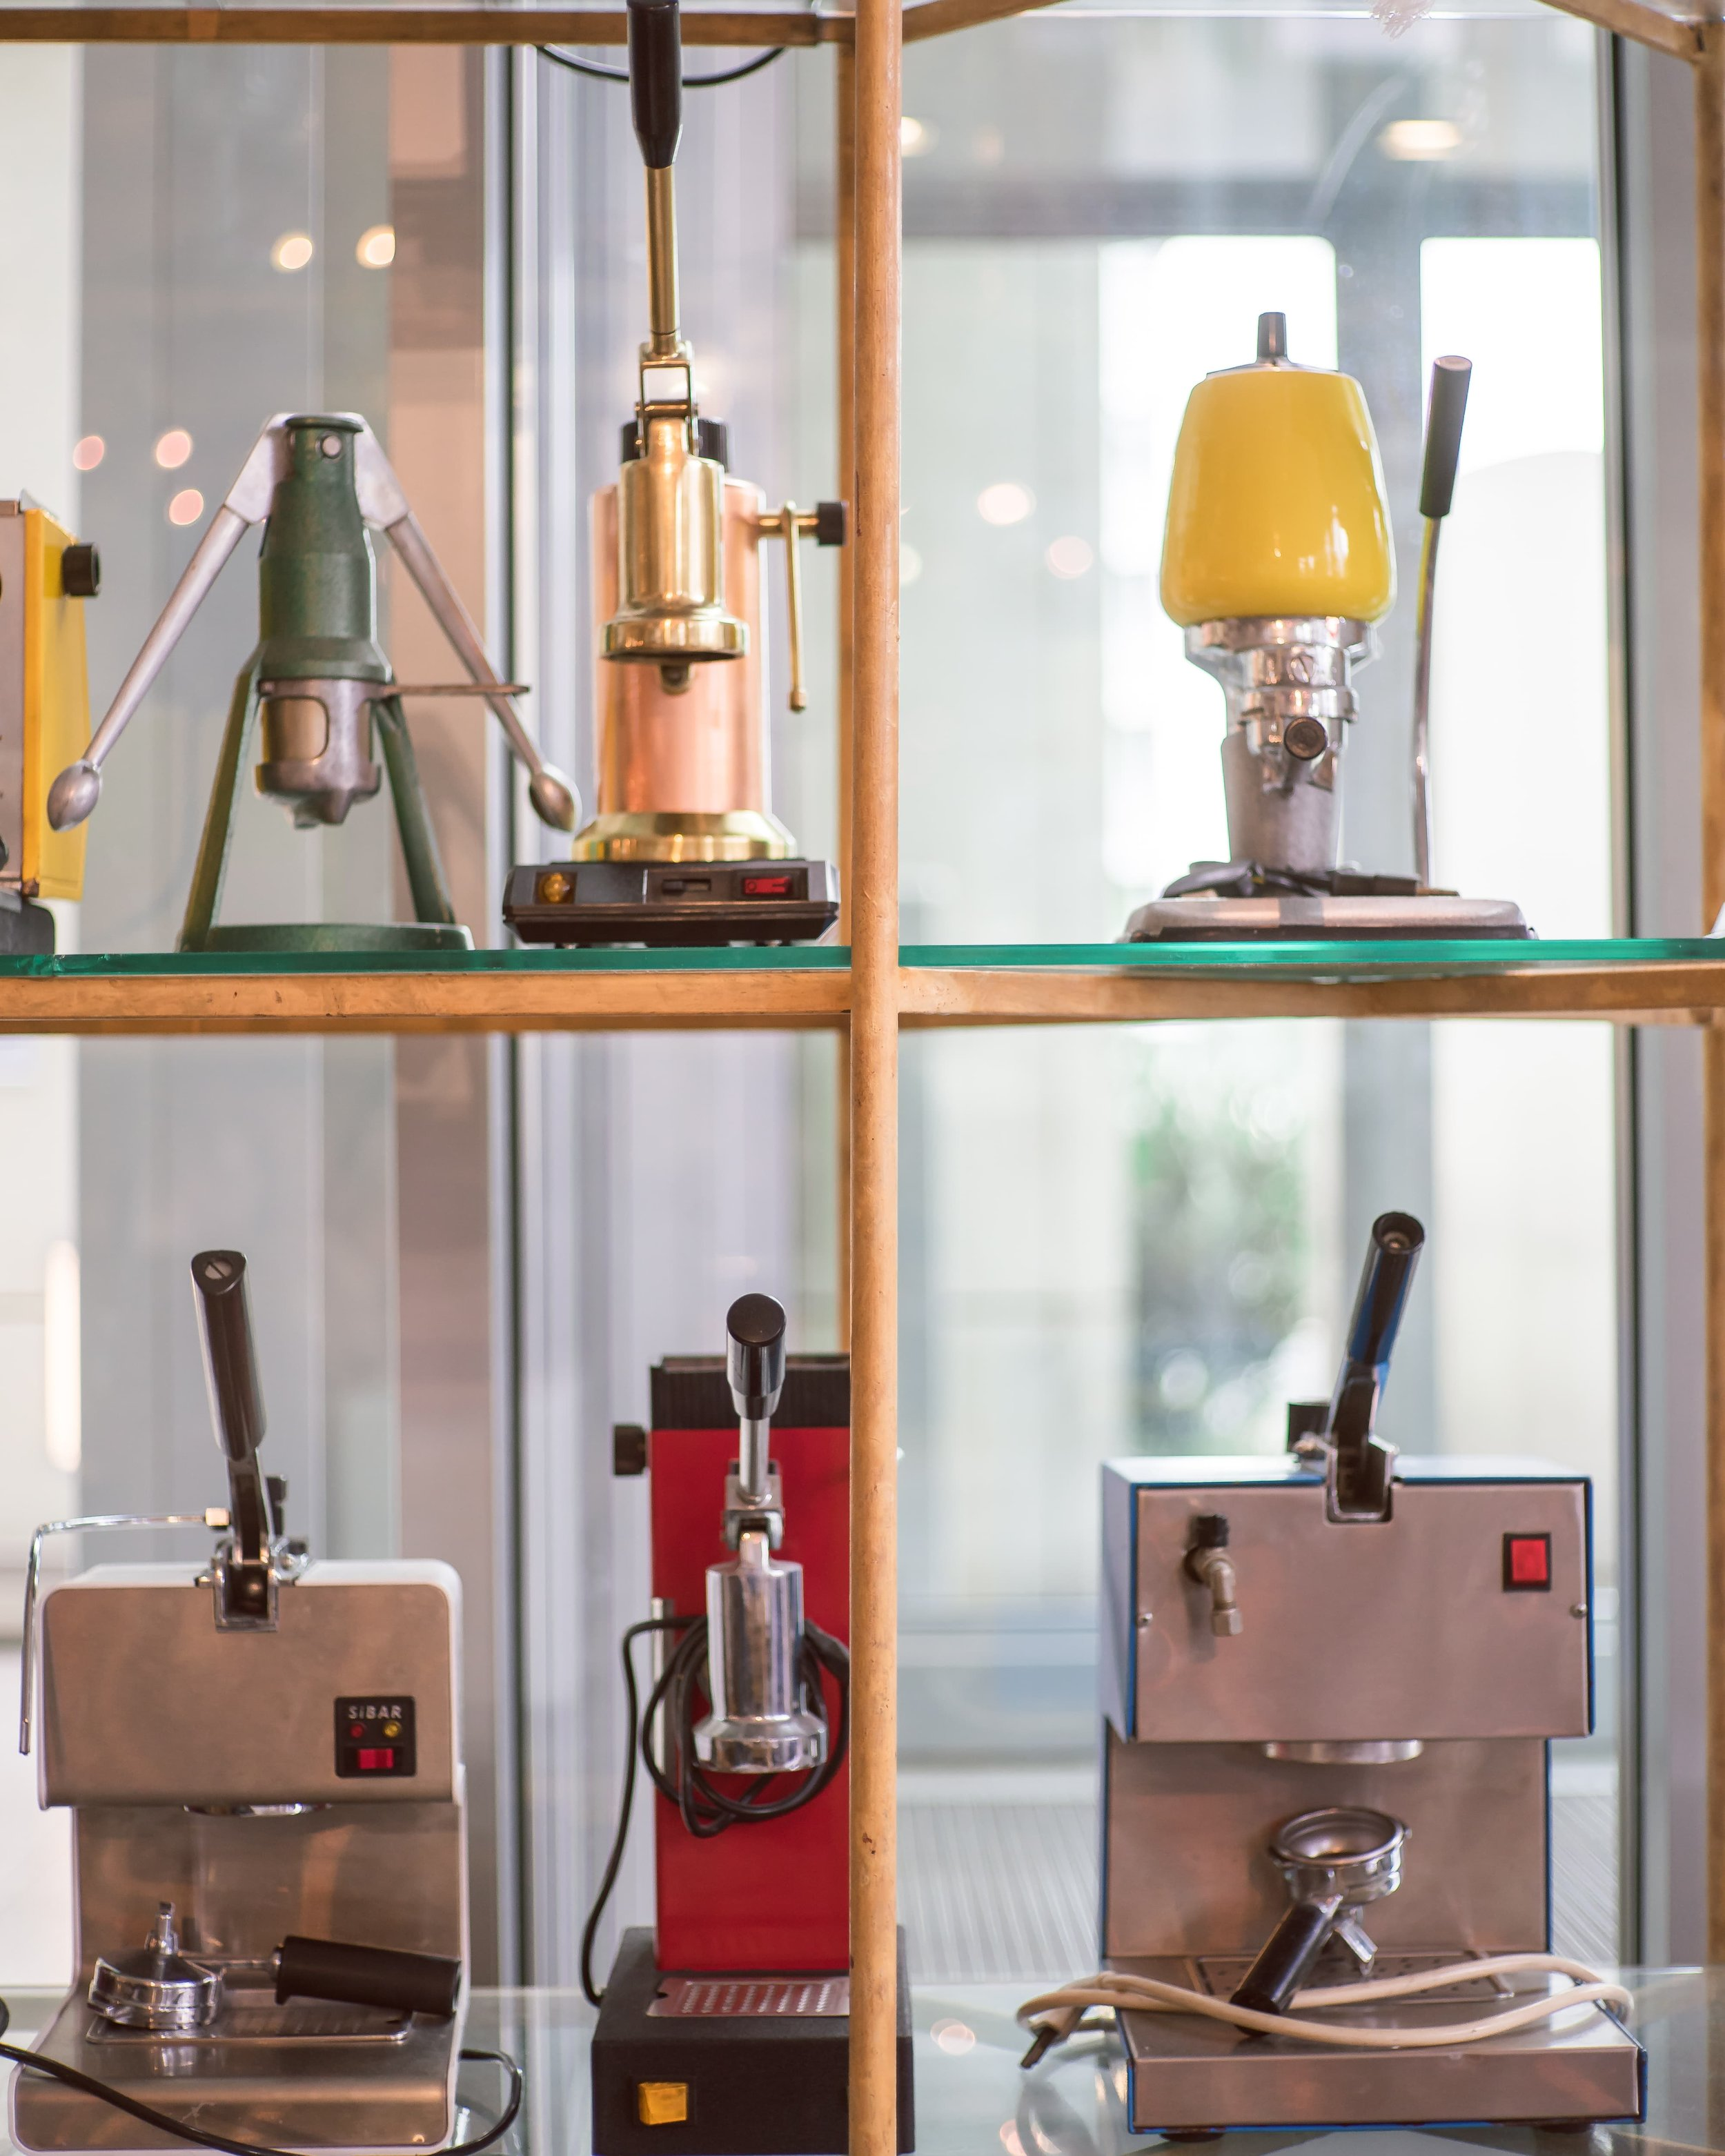 Dritan's collection of coffee machines